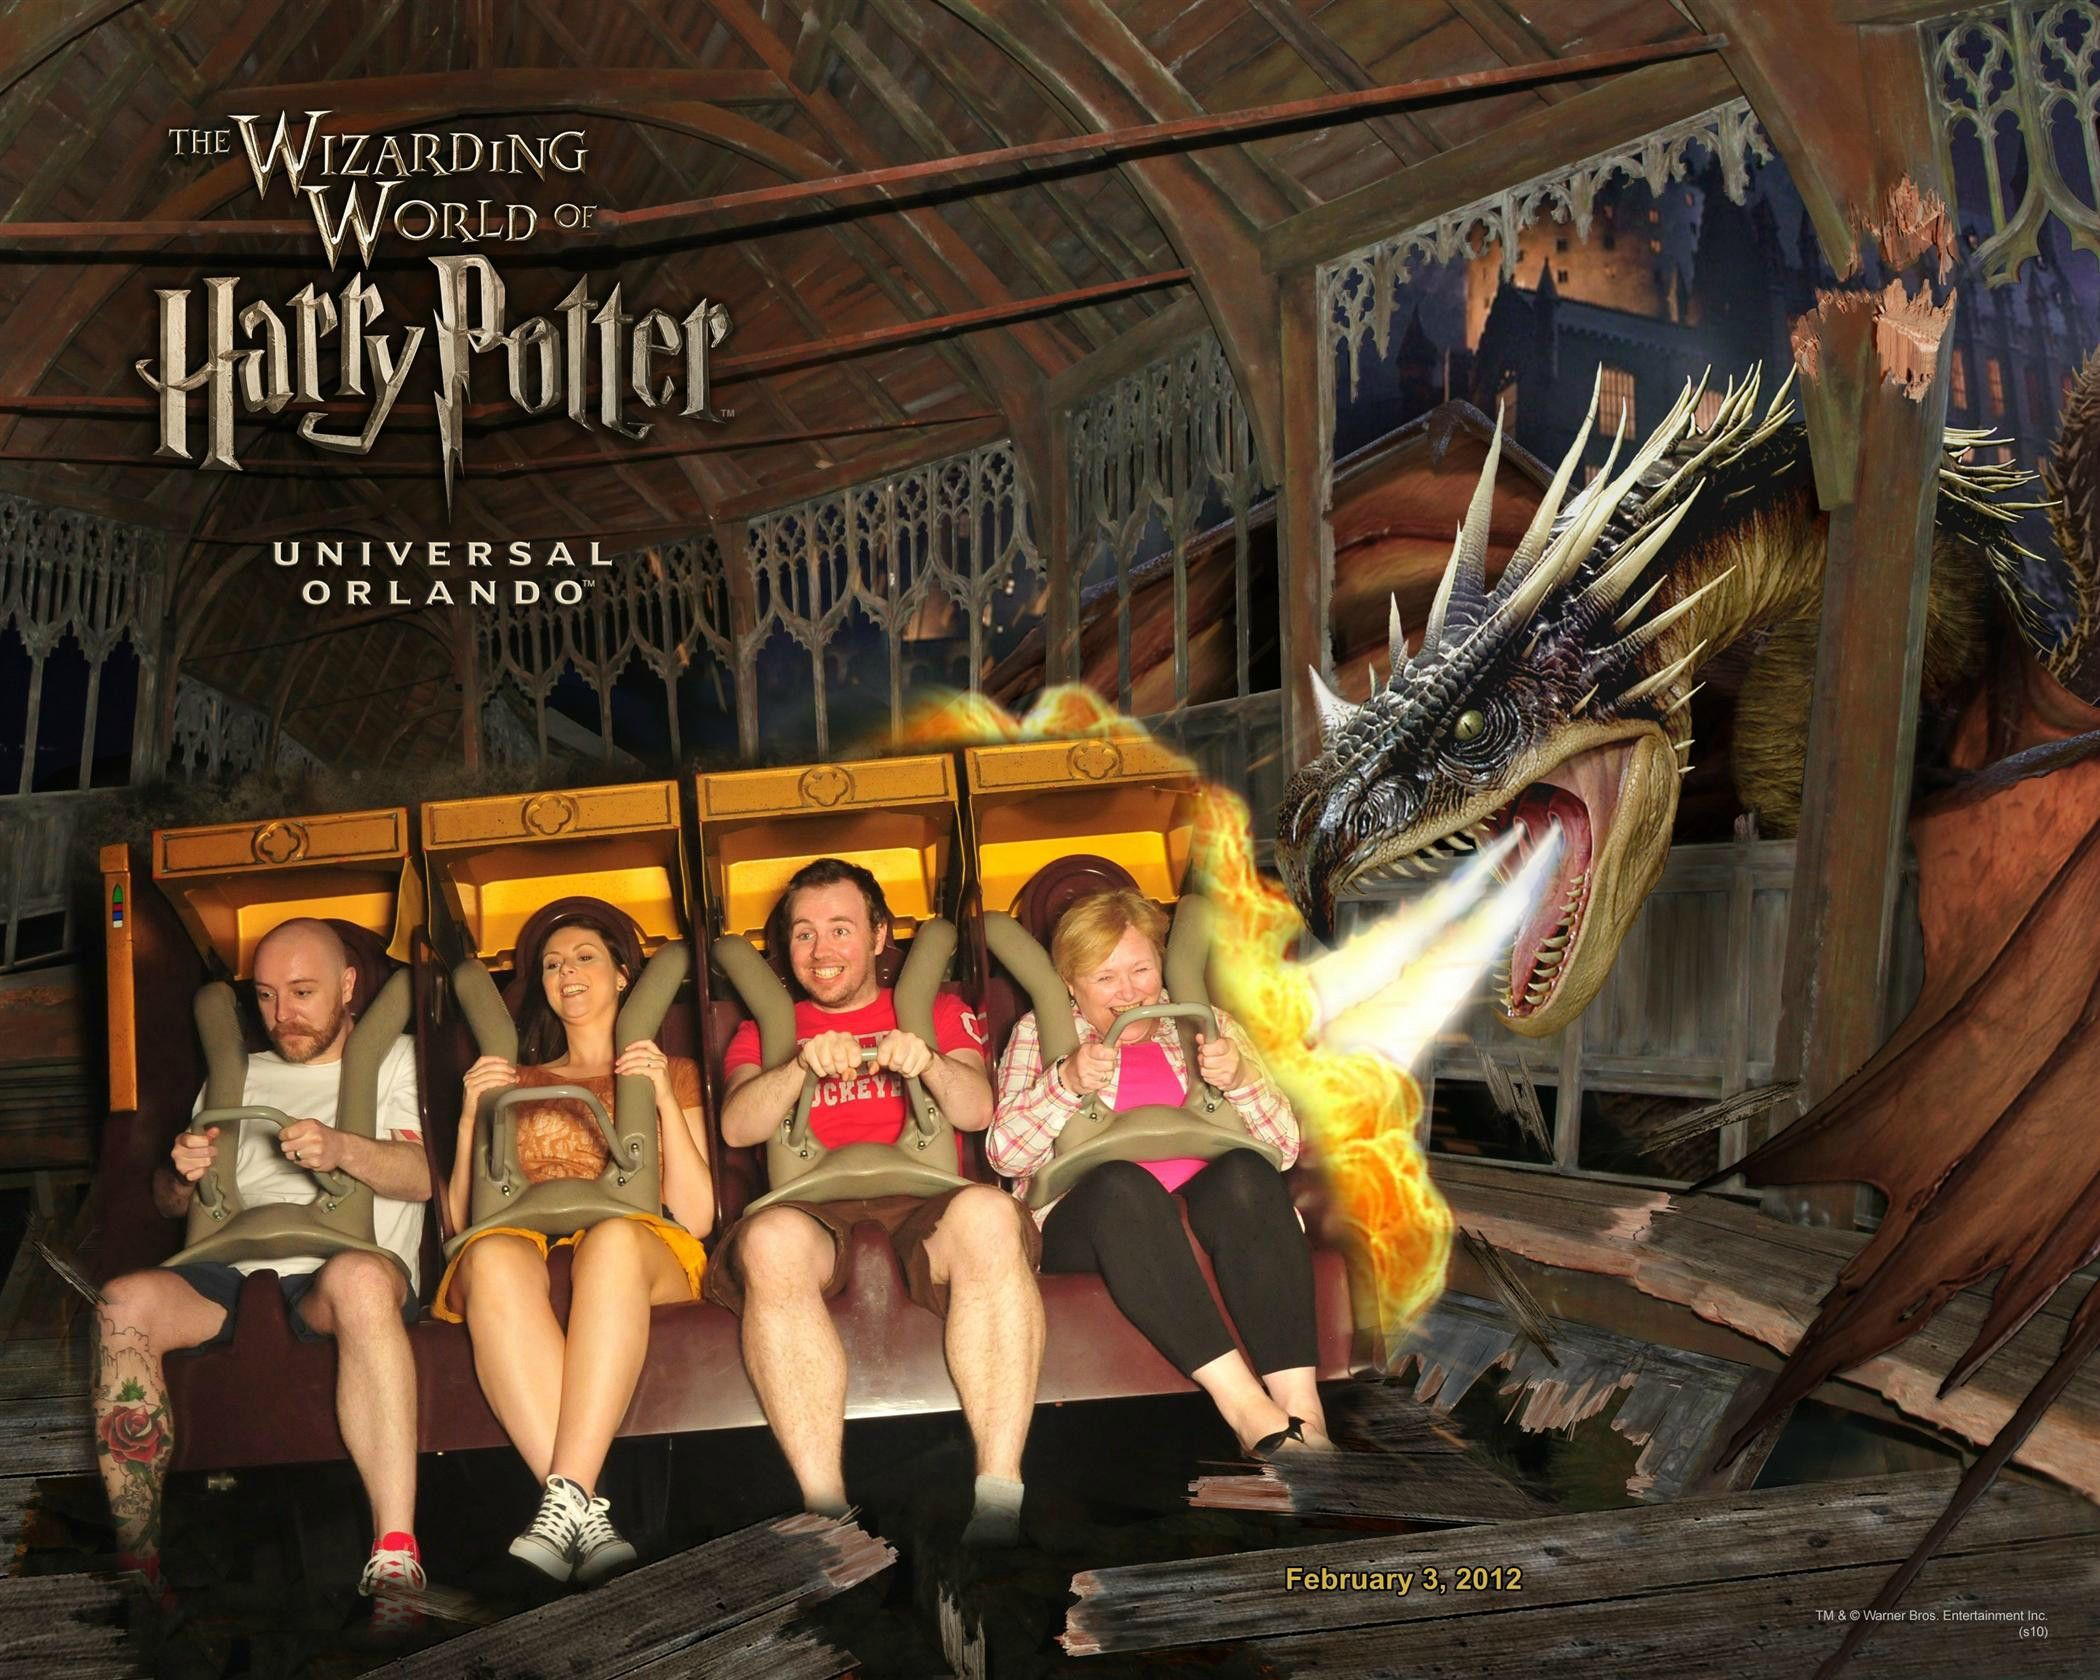 Pin By Russell Andrus On My Favorite Place To Be Universal Studios Florida Universal Orlando Harry Potter Universal Studios